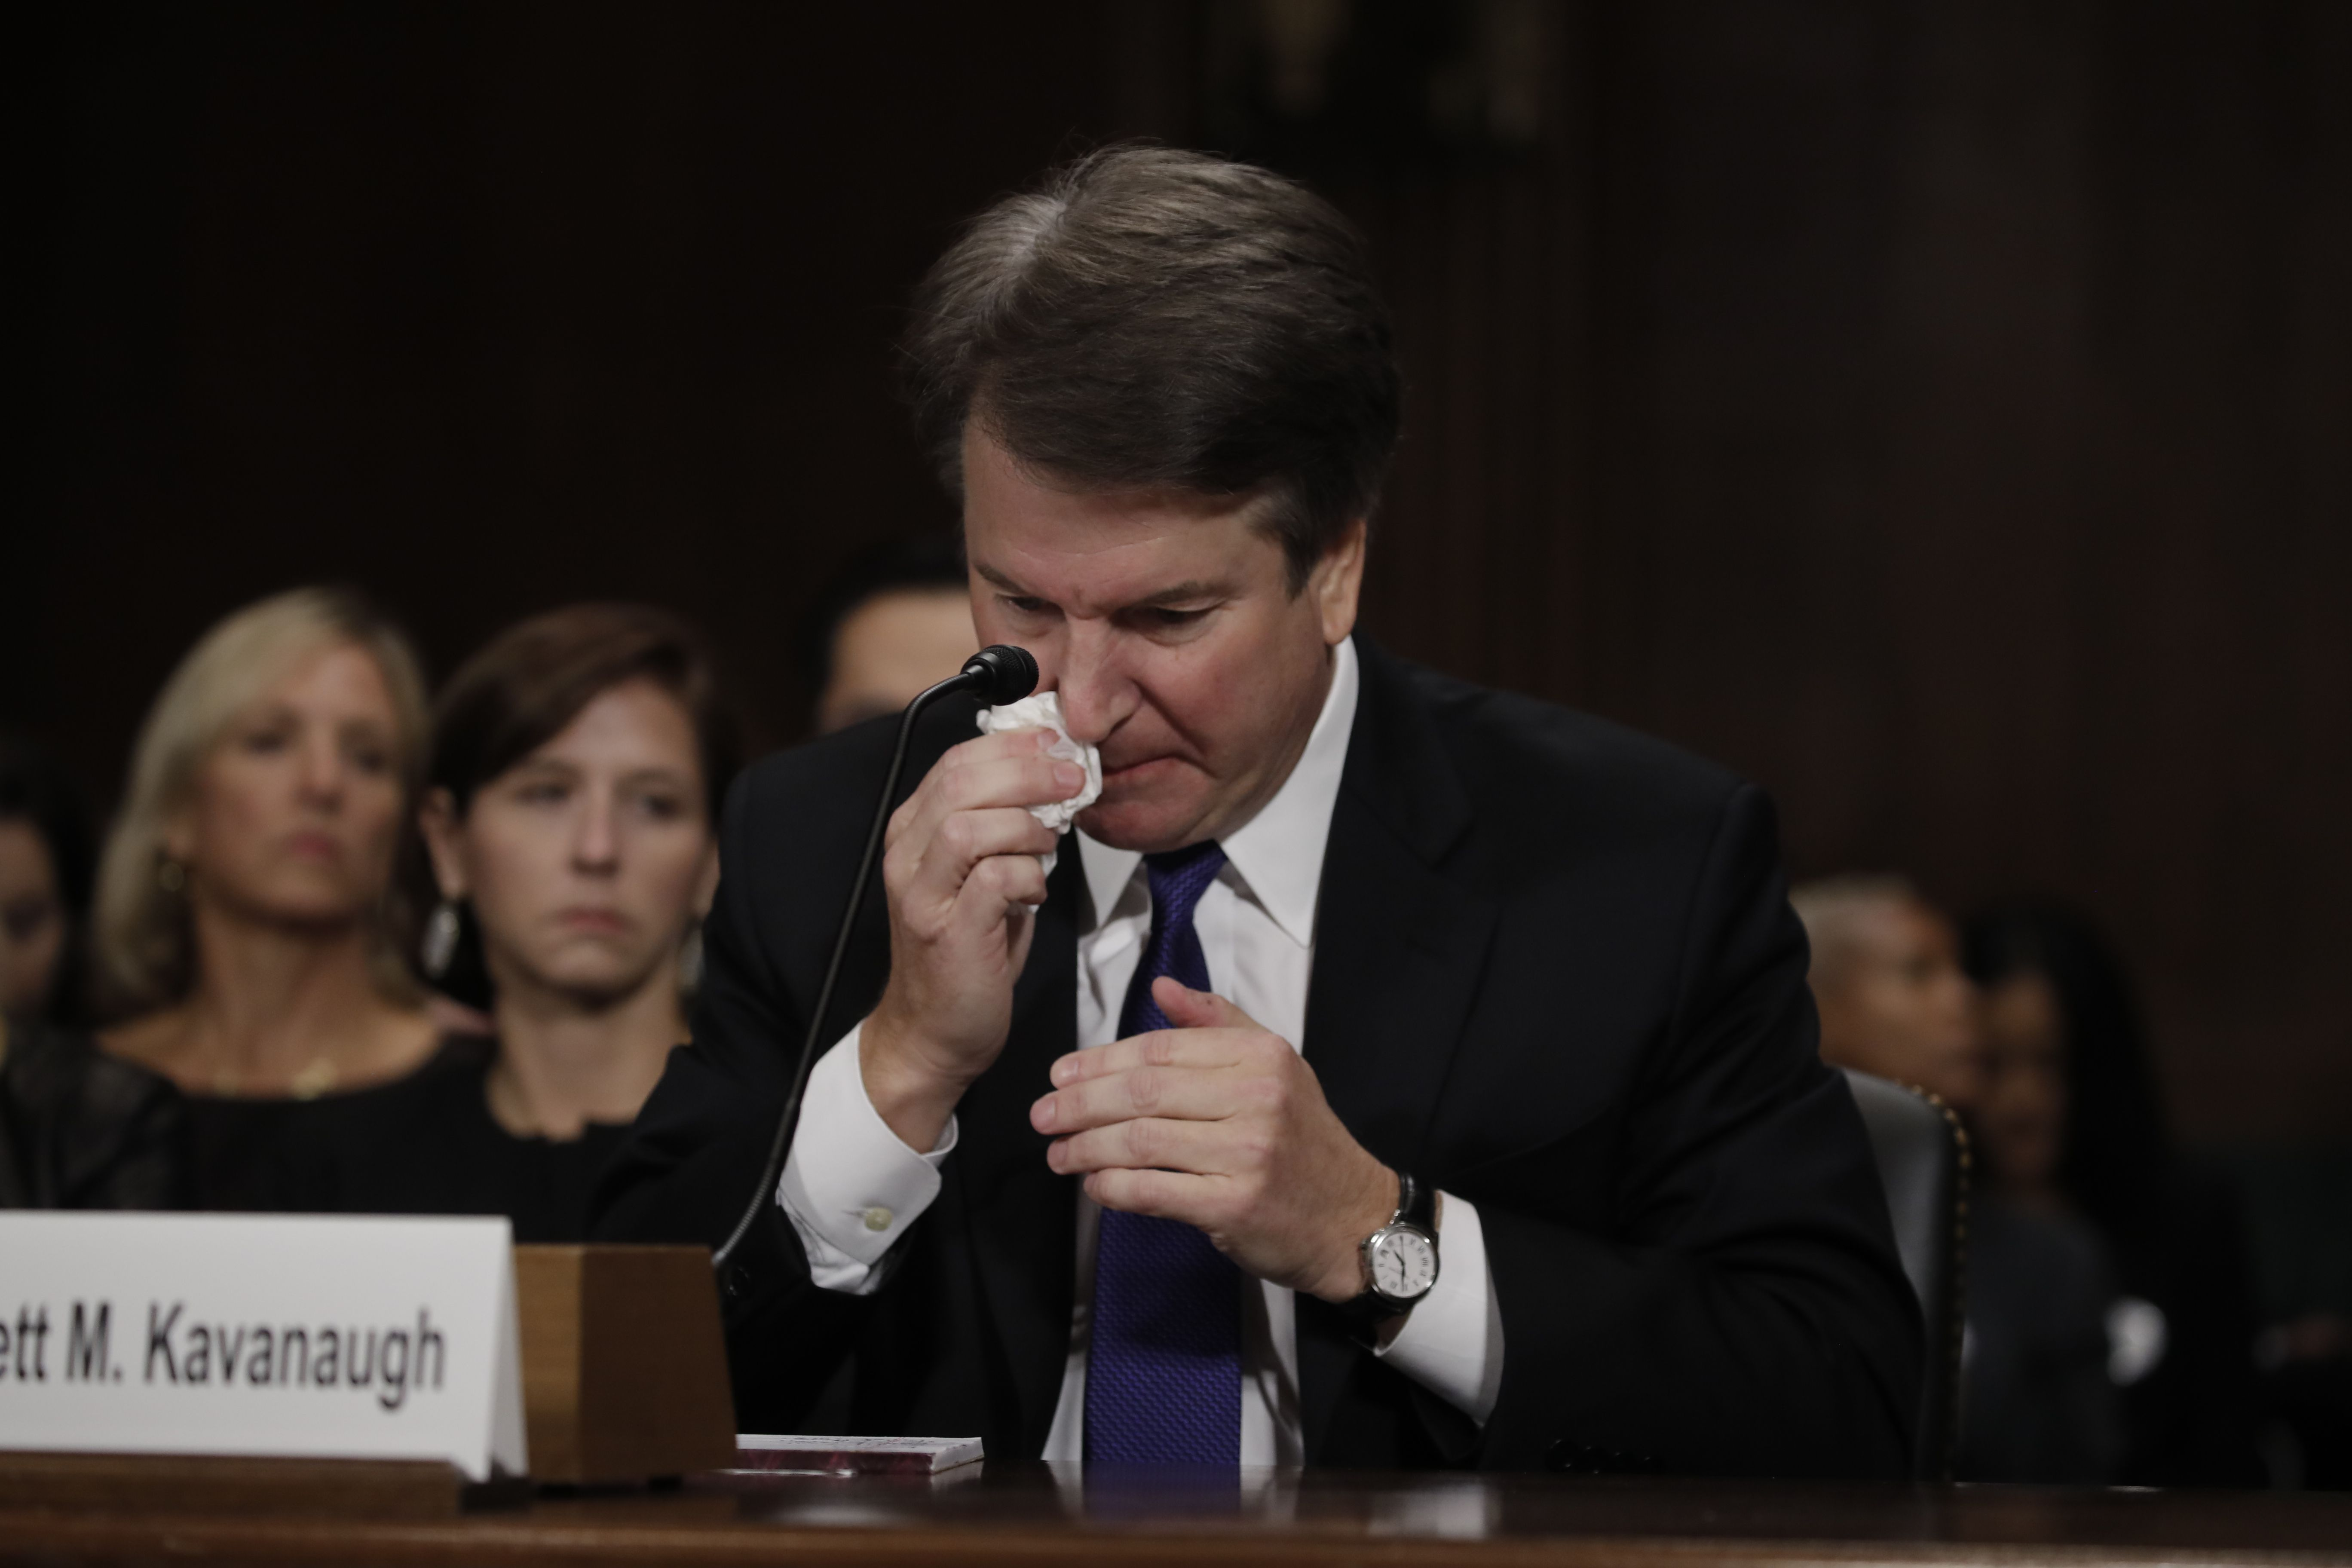 Kavanaugh wipes a tear while testifying. Photo: Tom Williams-Pool/Getty Images